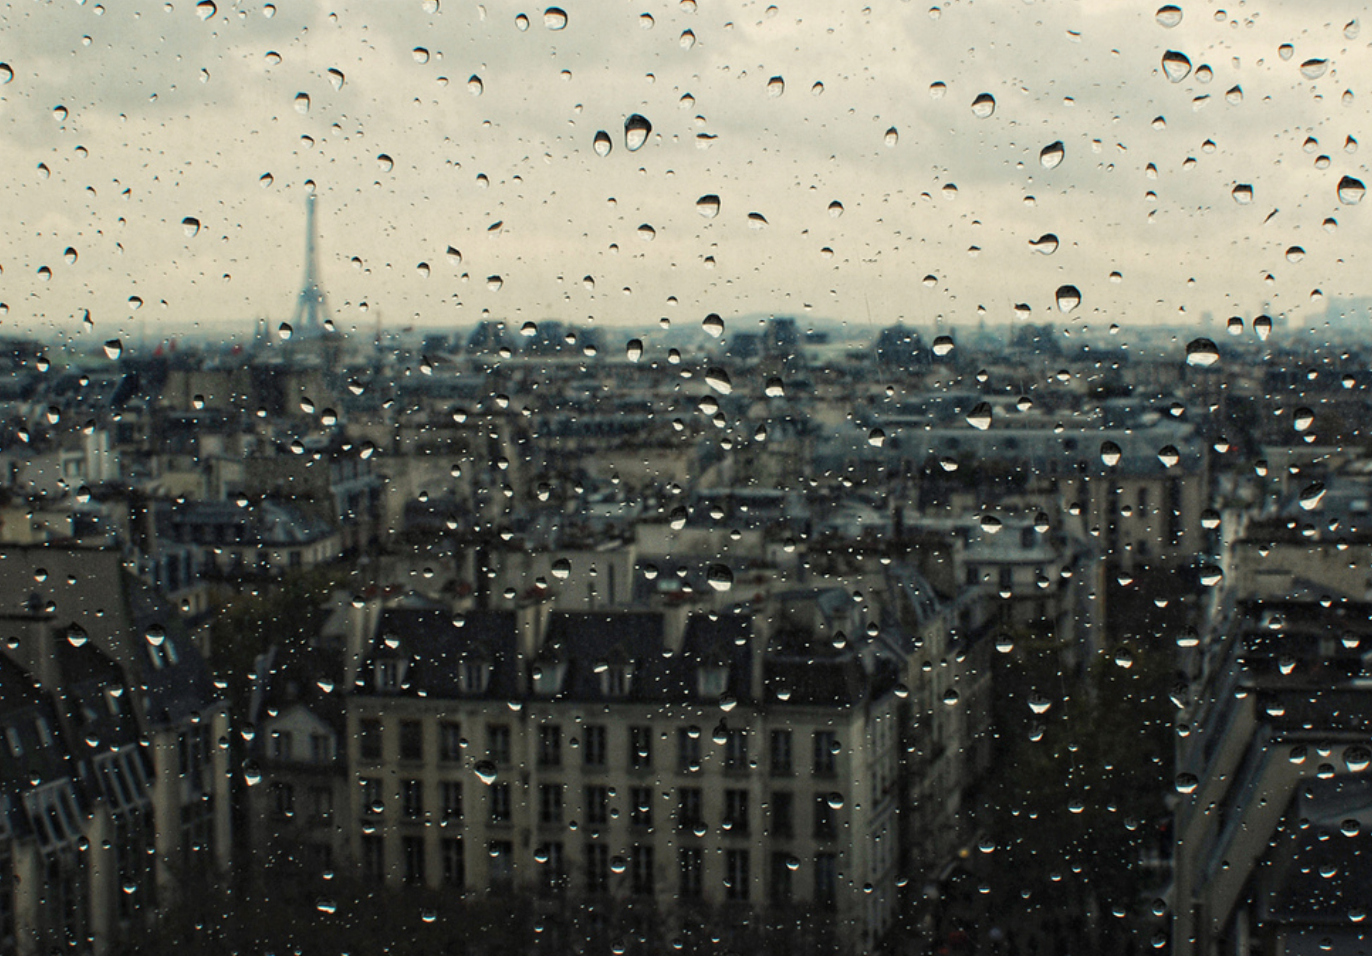 Paris and Eiffel Tower in Rain